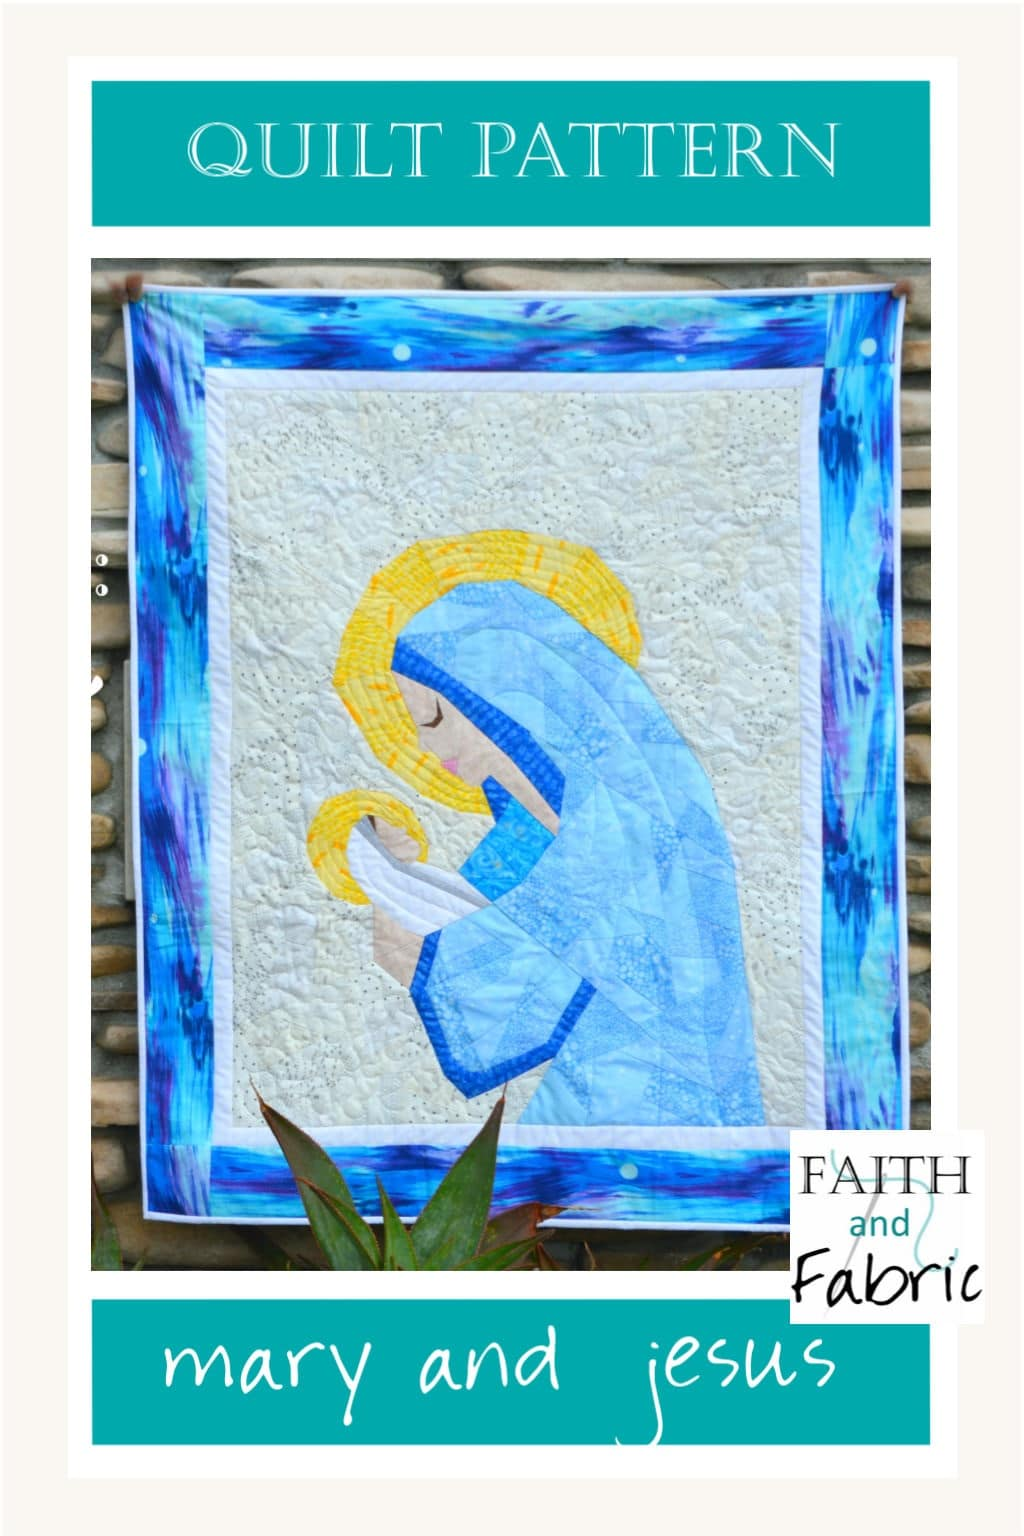 Celebrate the love of mother and child with this Christian quilt pattern of Mary and Jesus, perfect for Christmas or any time! While many quilt patterns depict the cross, here you'll create the birth of Jesus as a quilt.